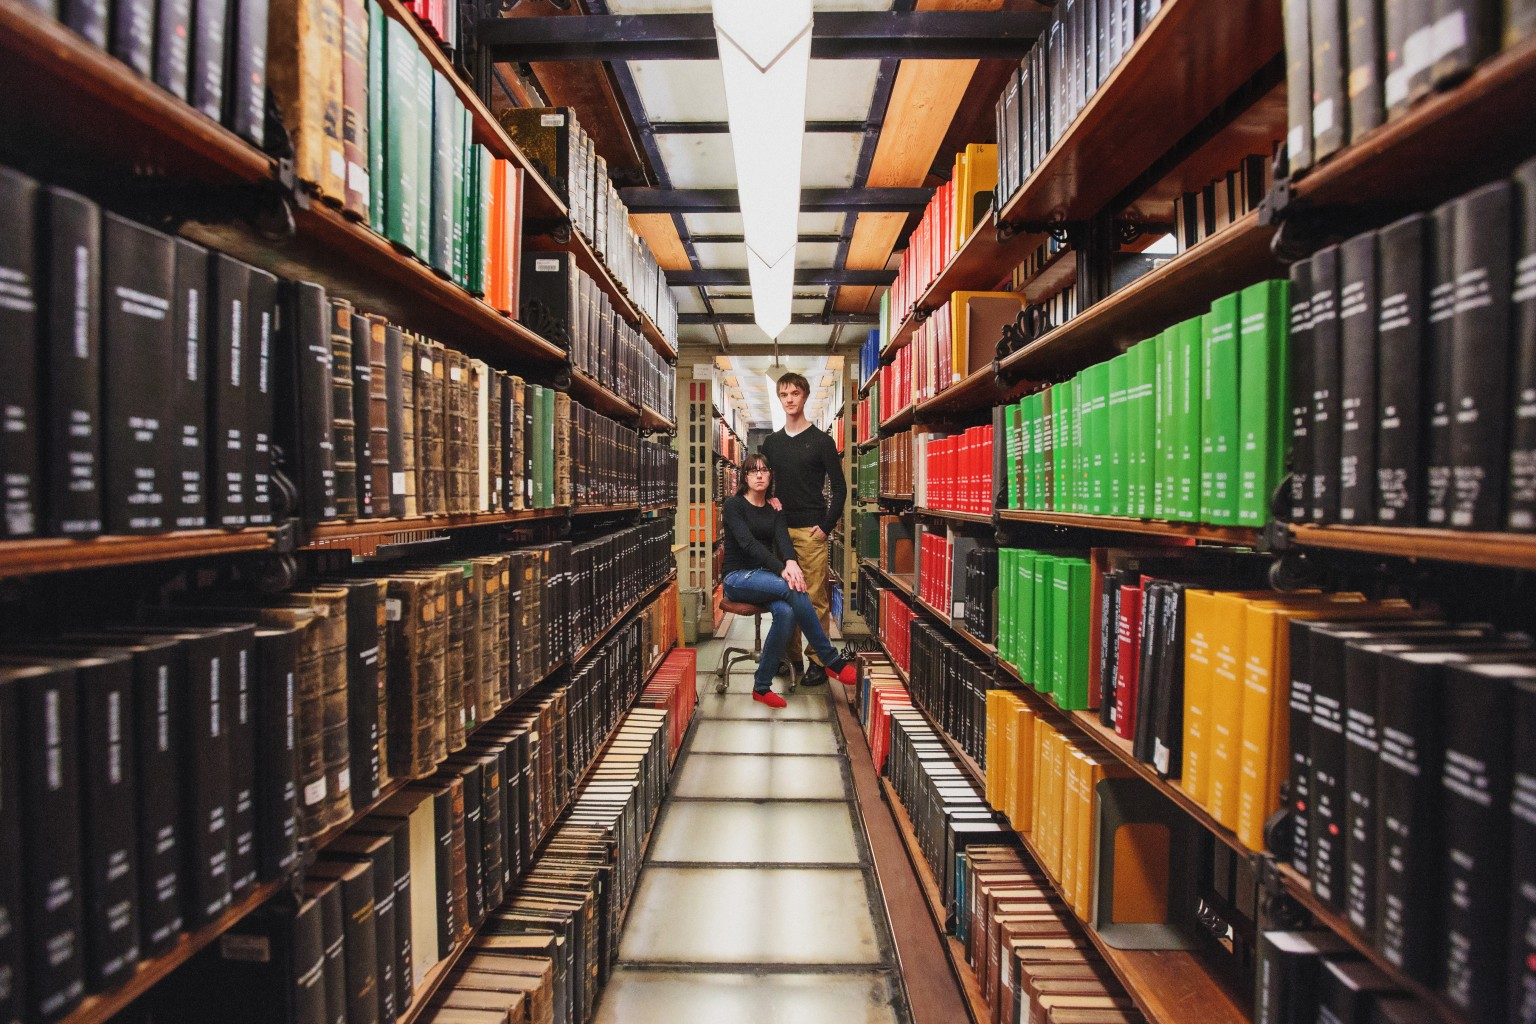 Nerdy Library Engagement Session Photo by Wes Craft